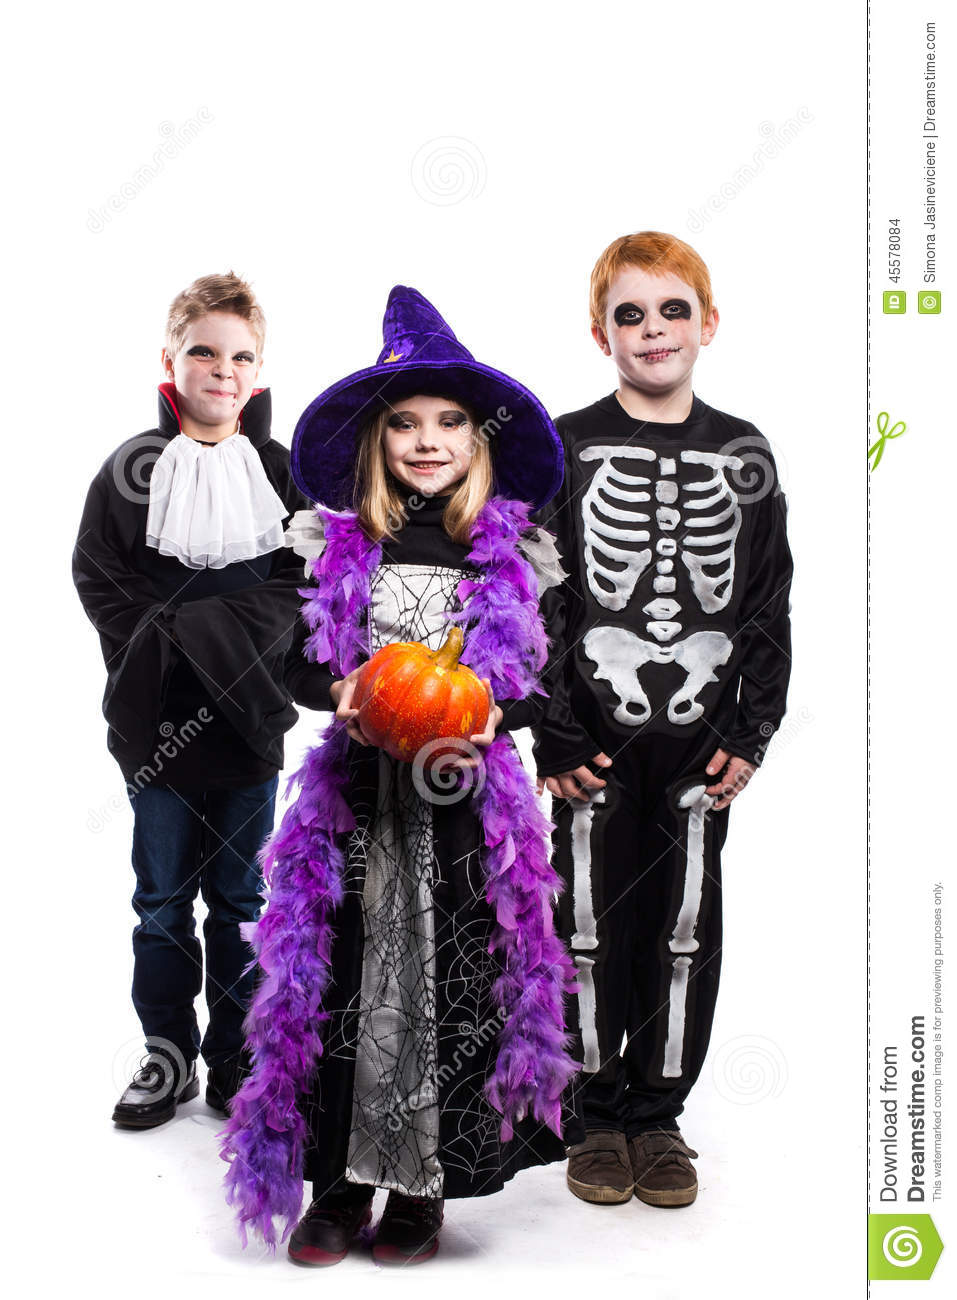 One Little Girl And Two Boys Dressed The Halloween Costumes: Witch ...